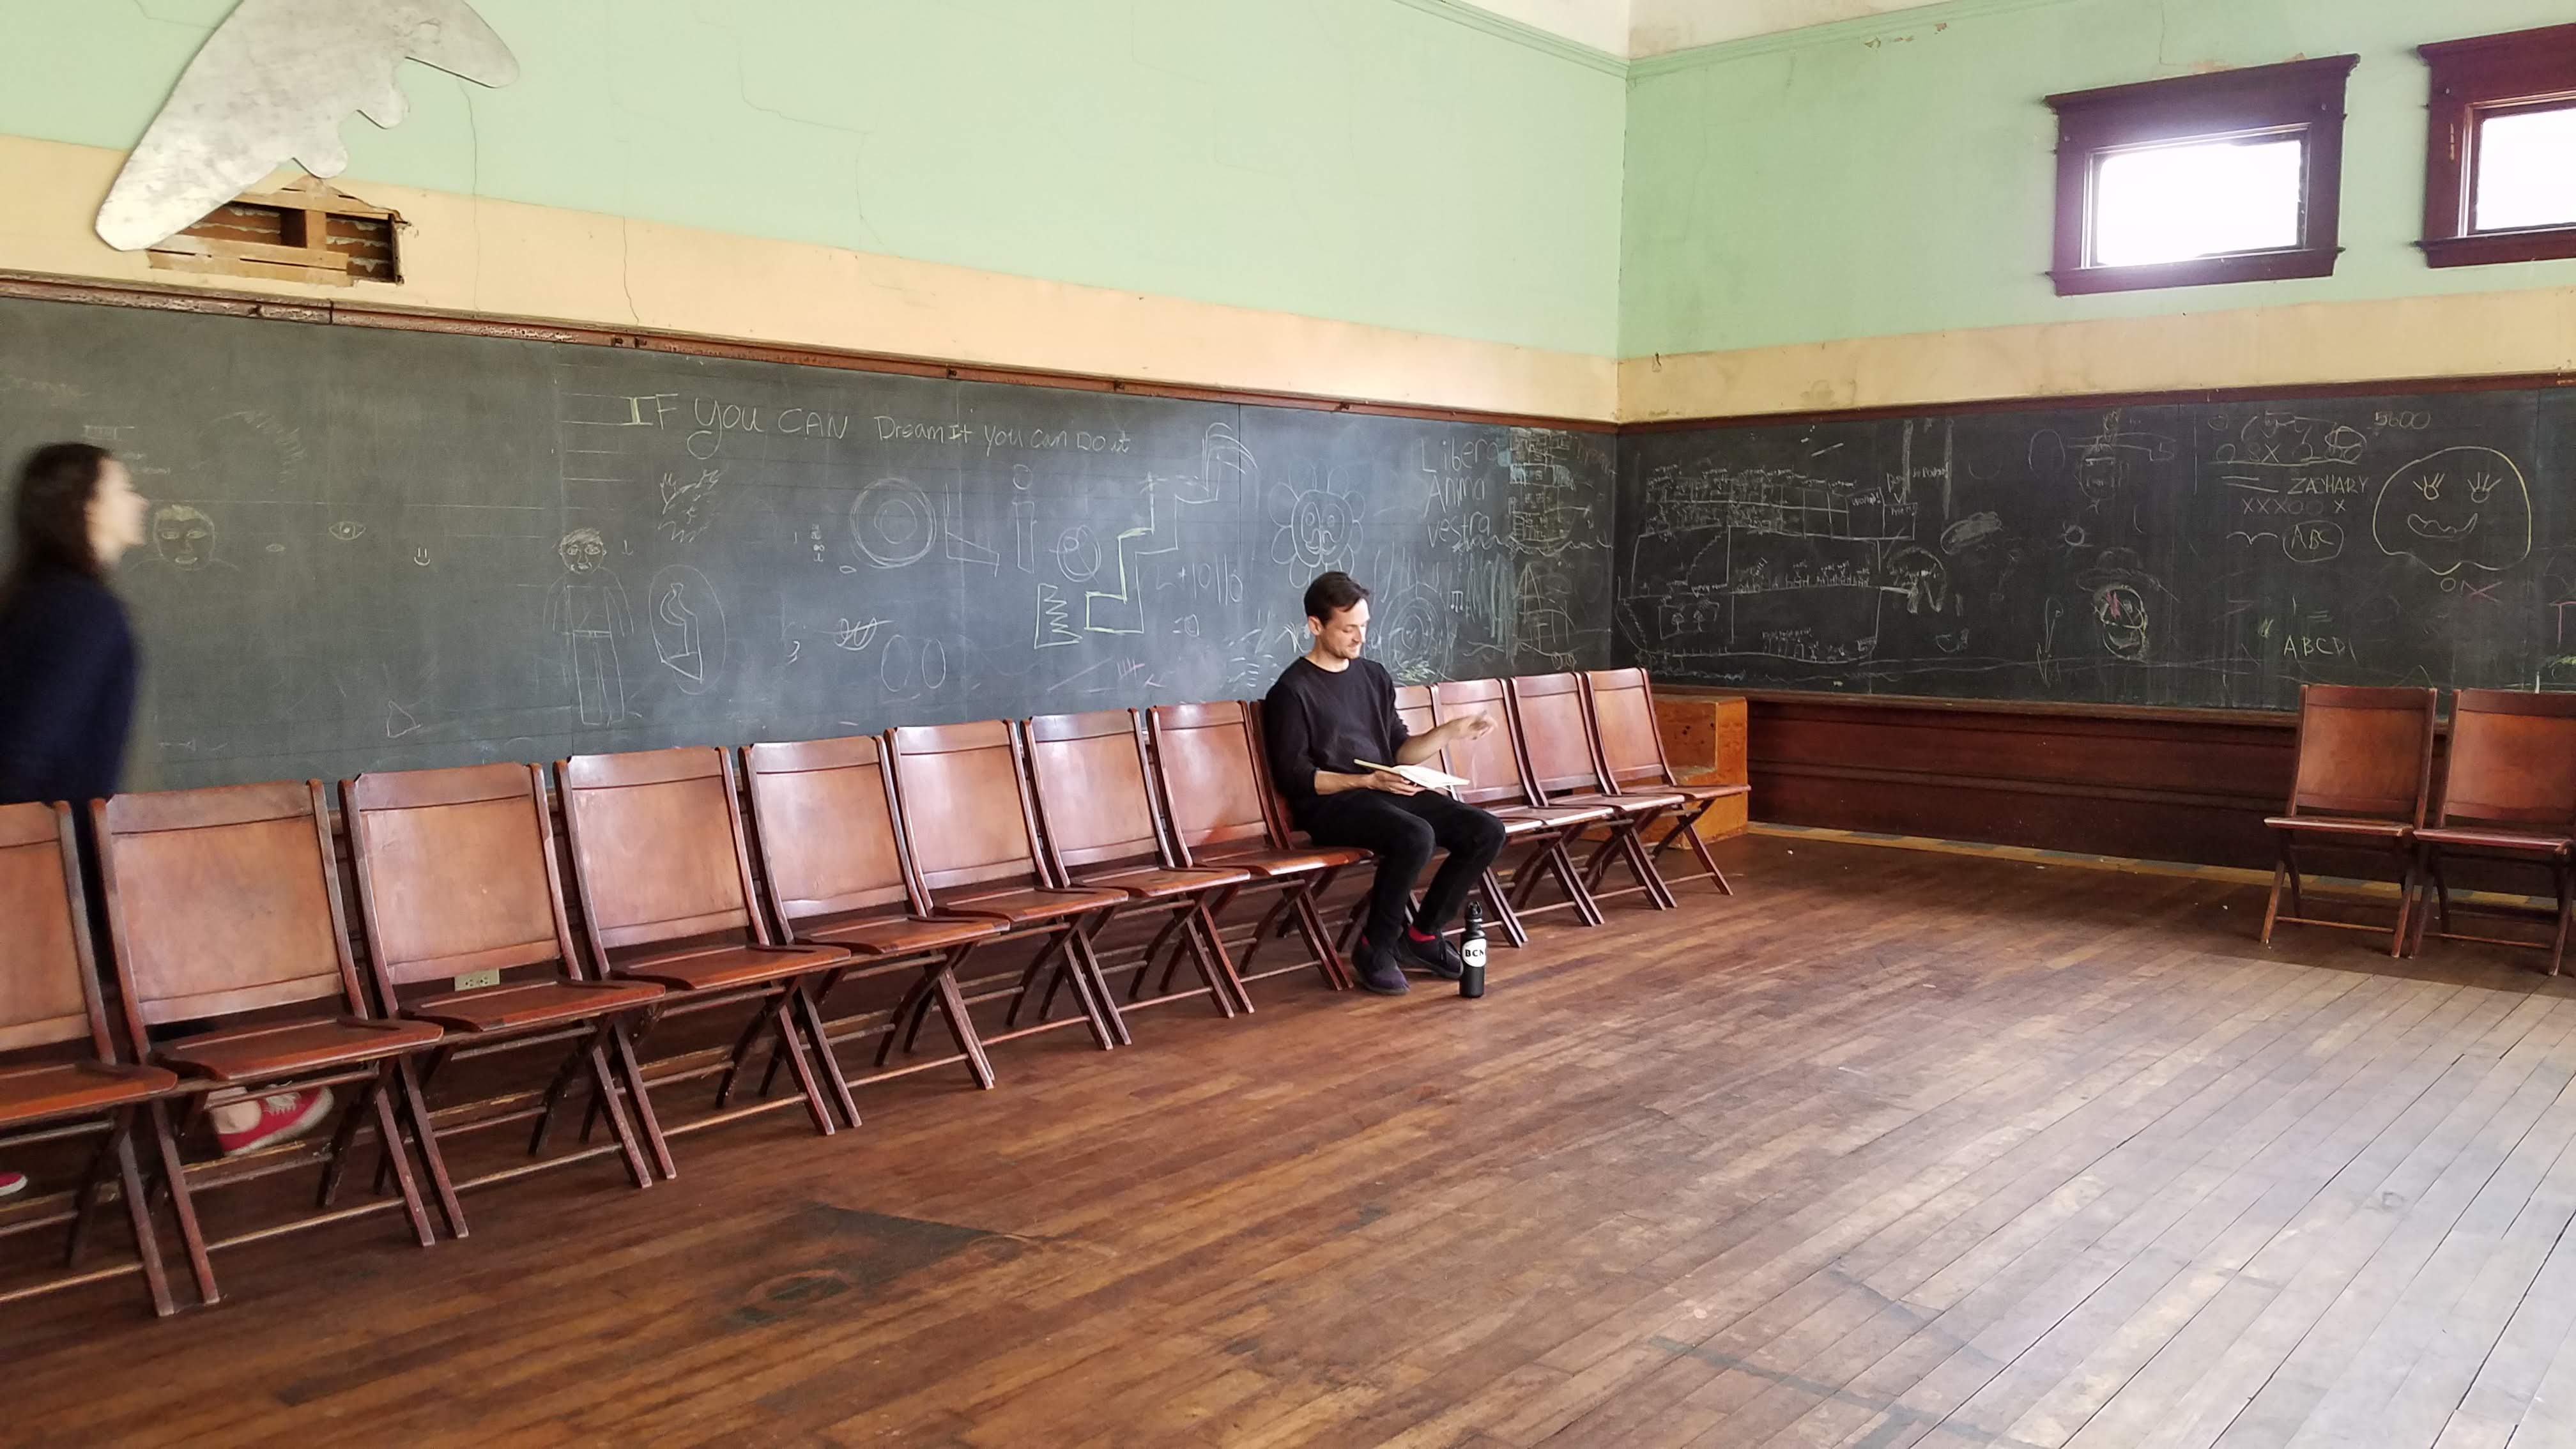 In an empty, antique schoolroom, one actor sits in a chair while another moves behind him.